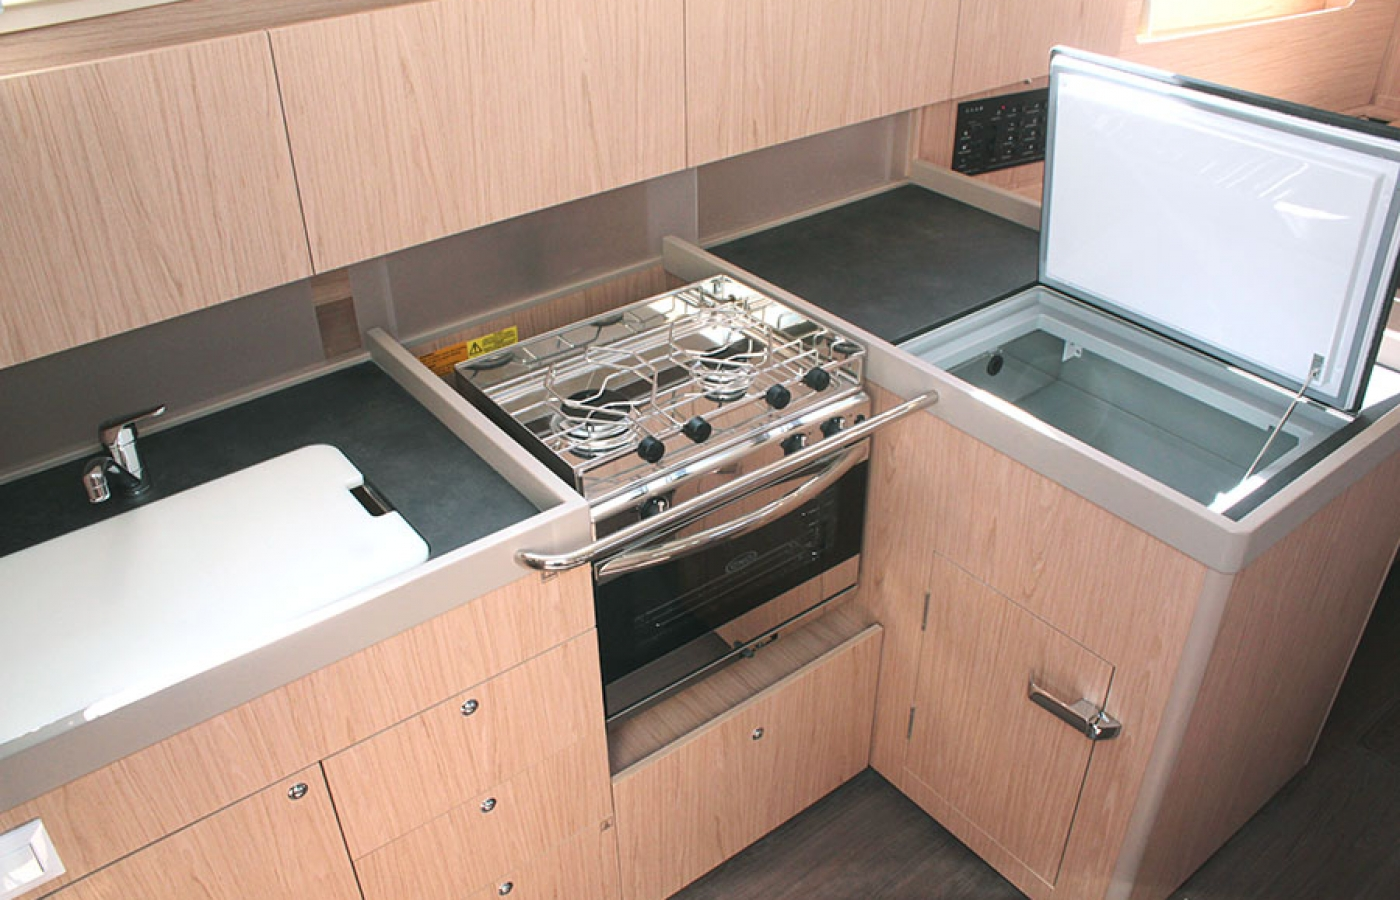 Kitchen area in the galley with modern appliances